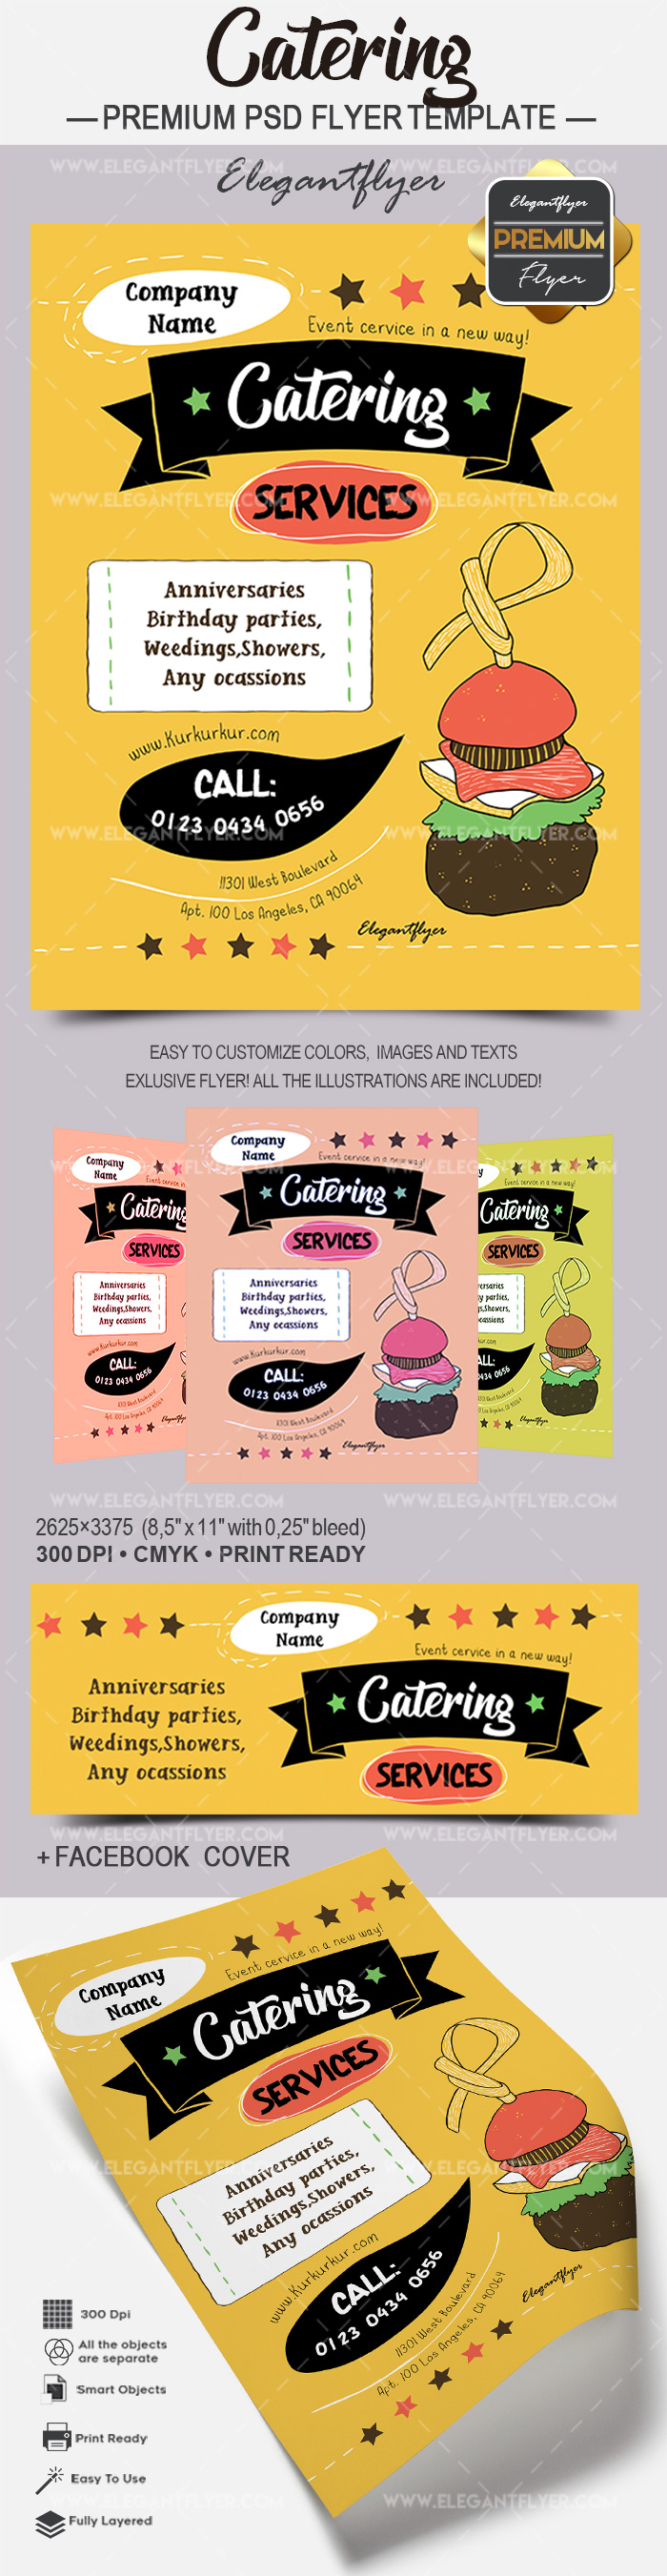 Catering – Premium Flyer PSD Template